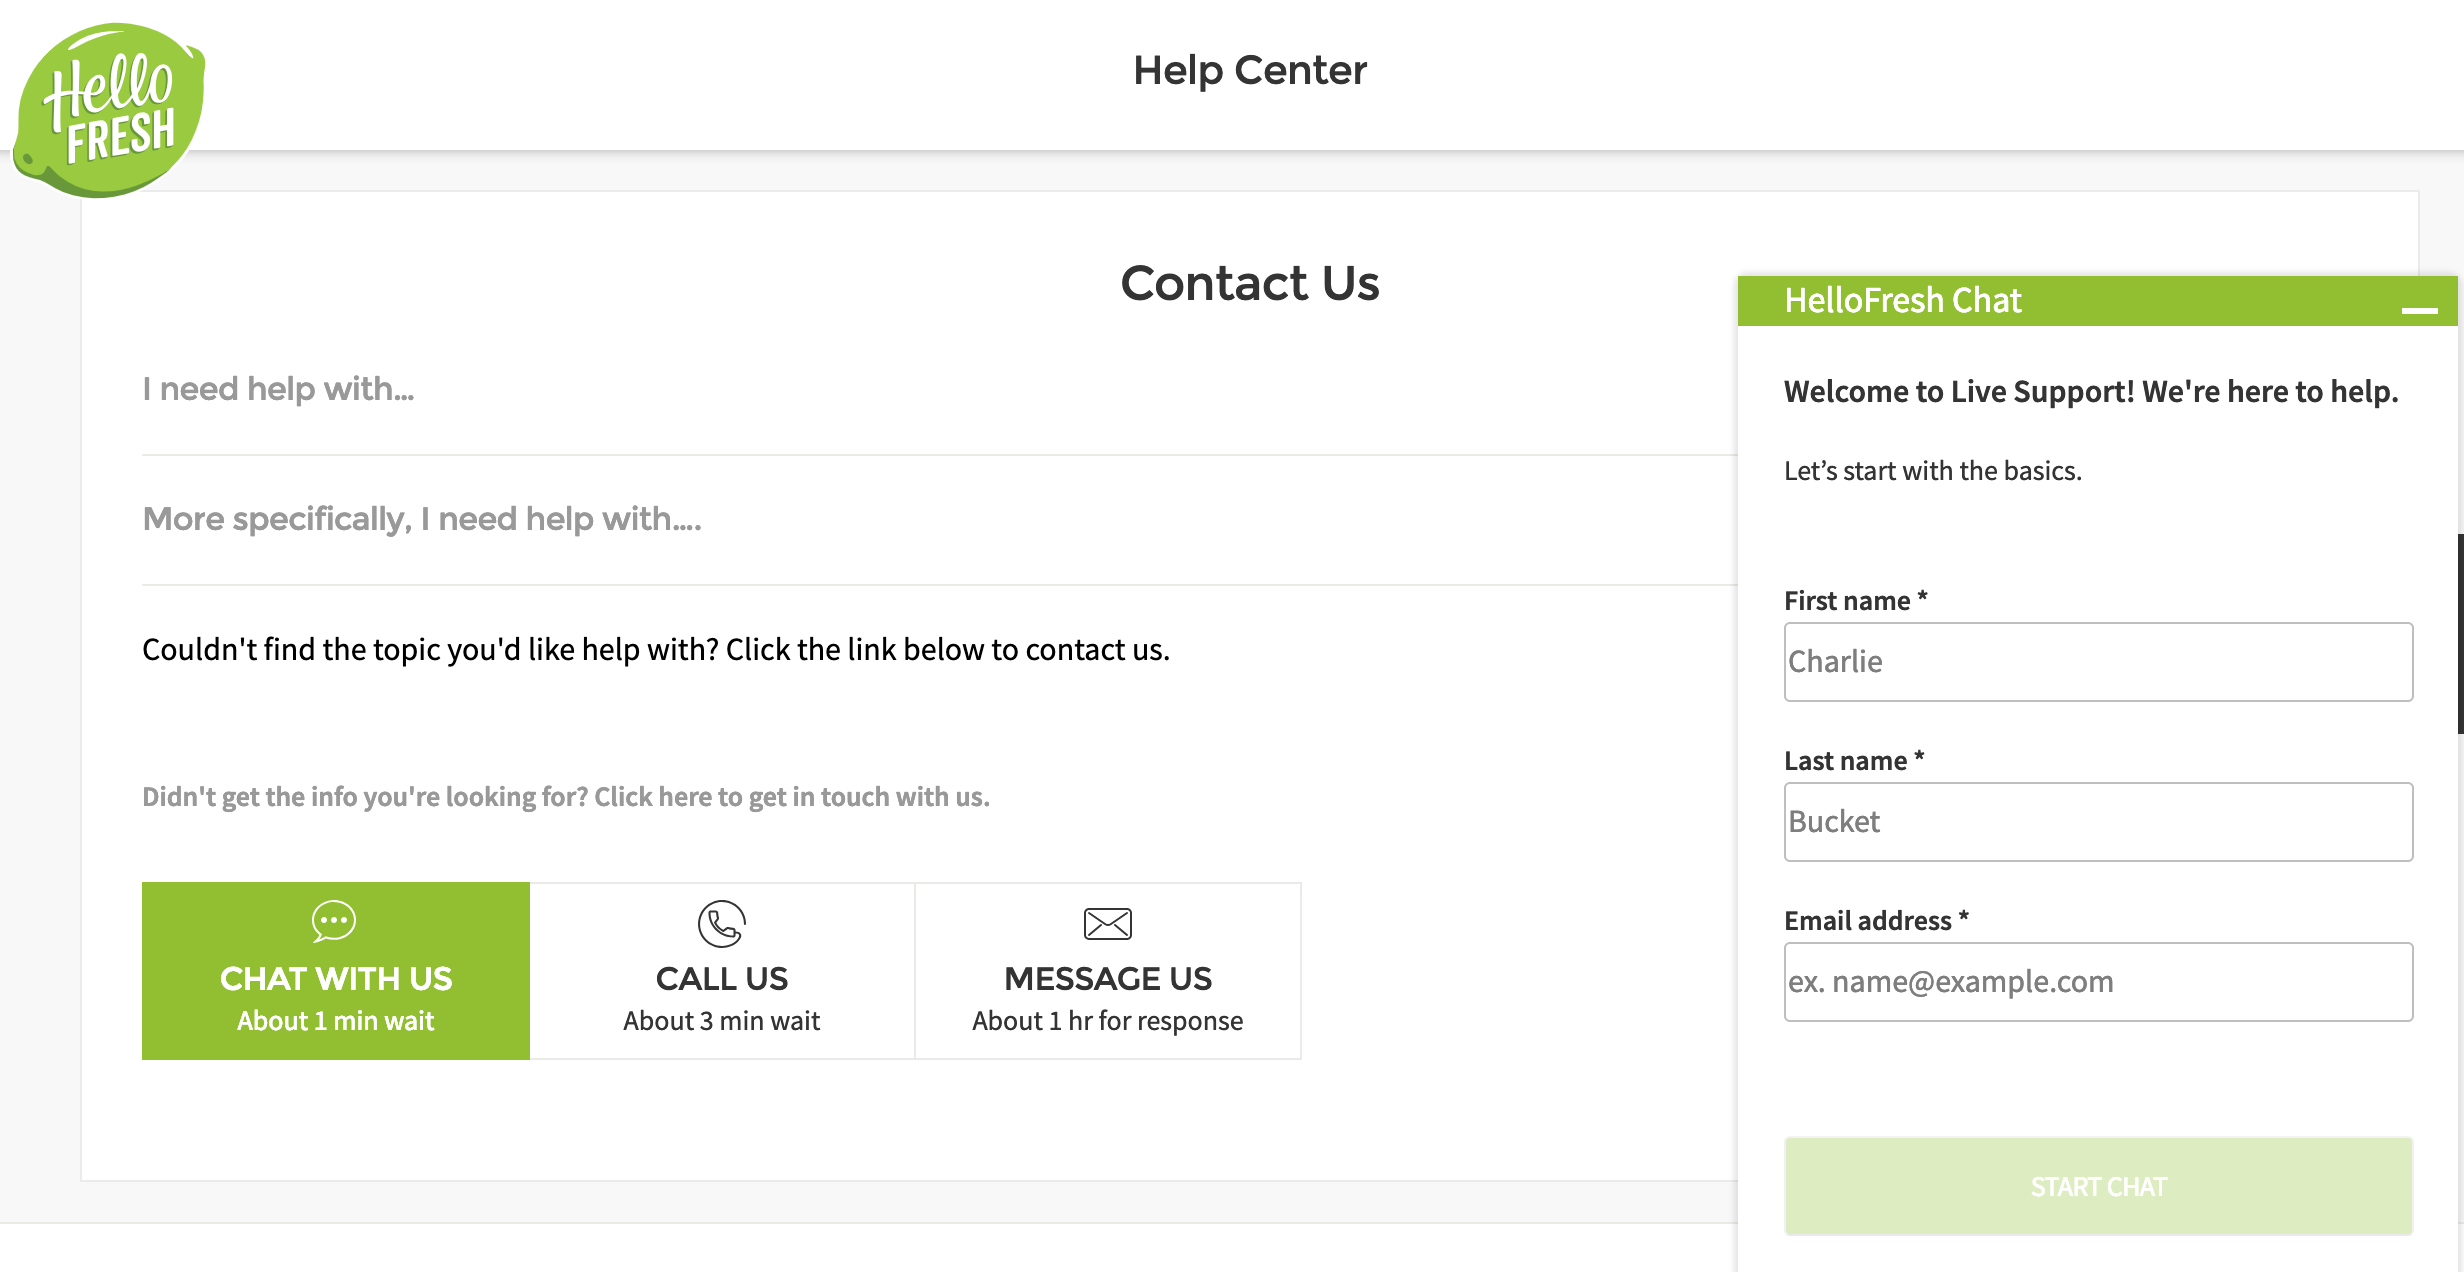 HelloFresh contact form provides samples of first and last name and email